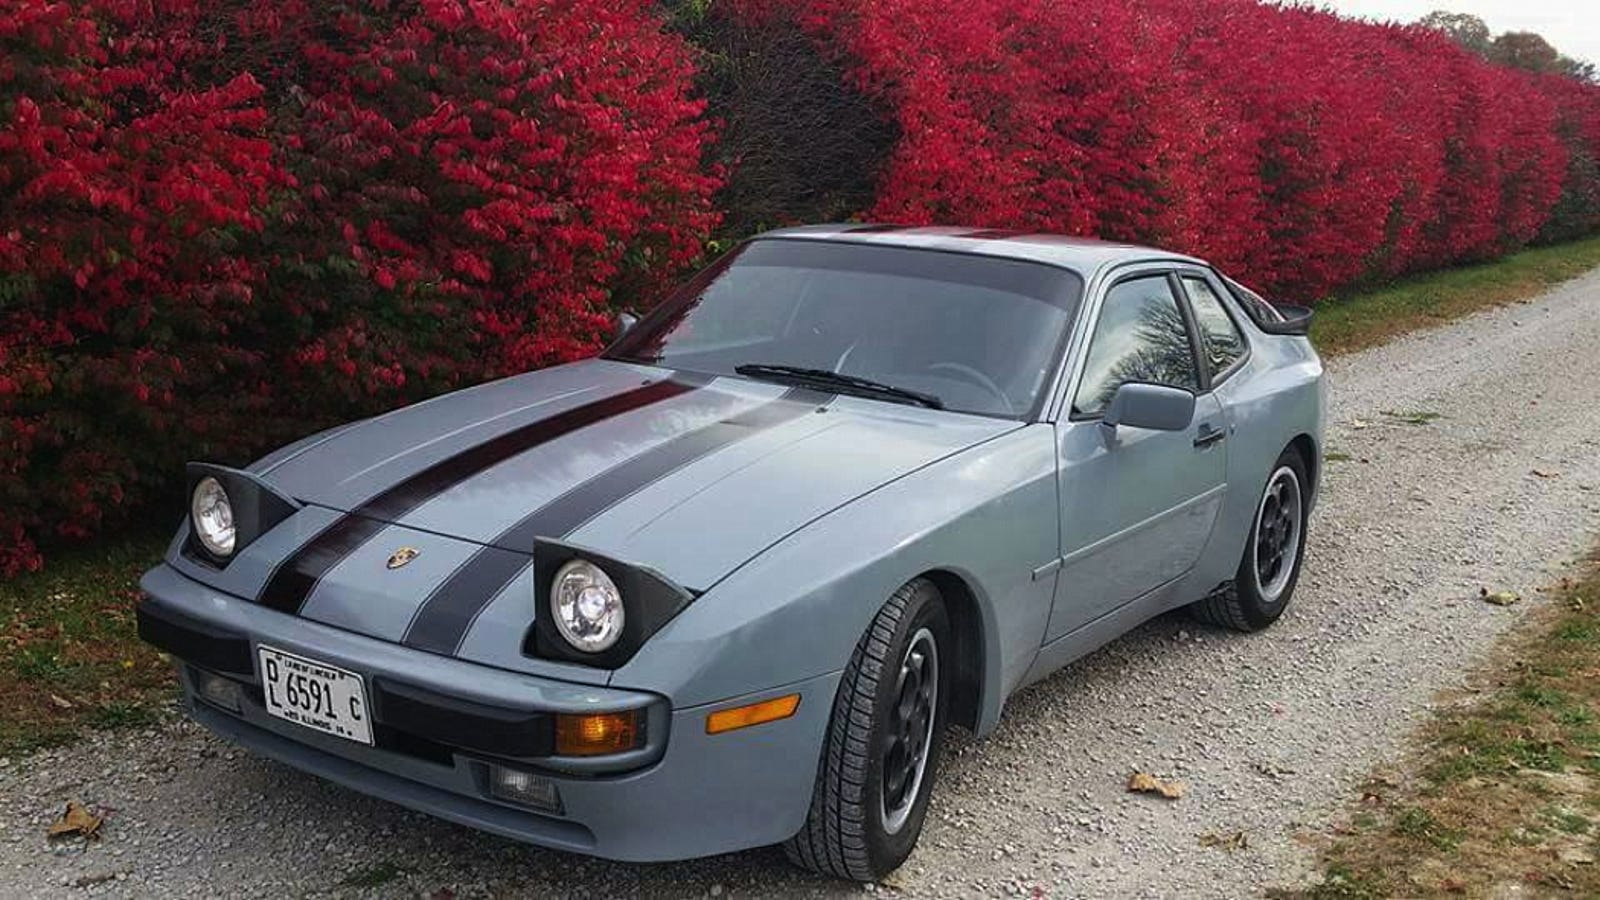 For $3,950, Could This 1987 Porsche 944 Be The Real Deal